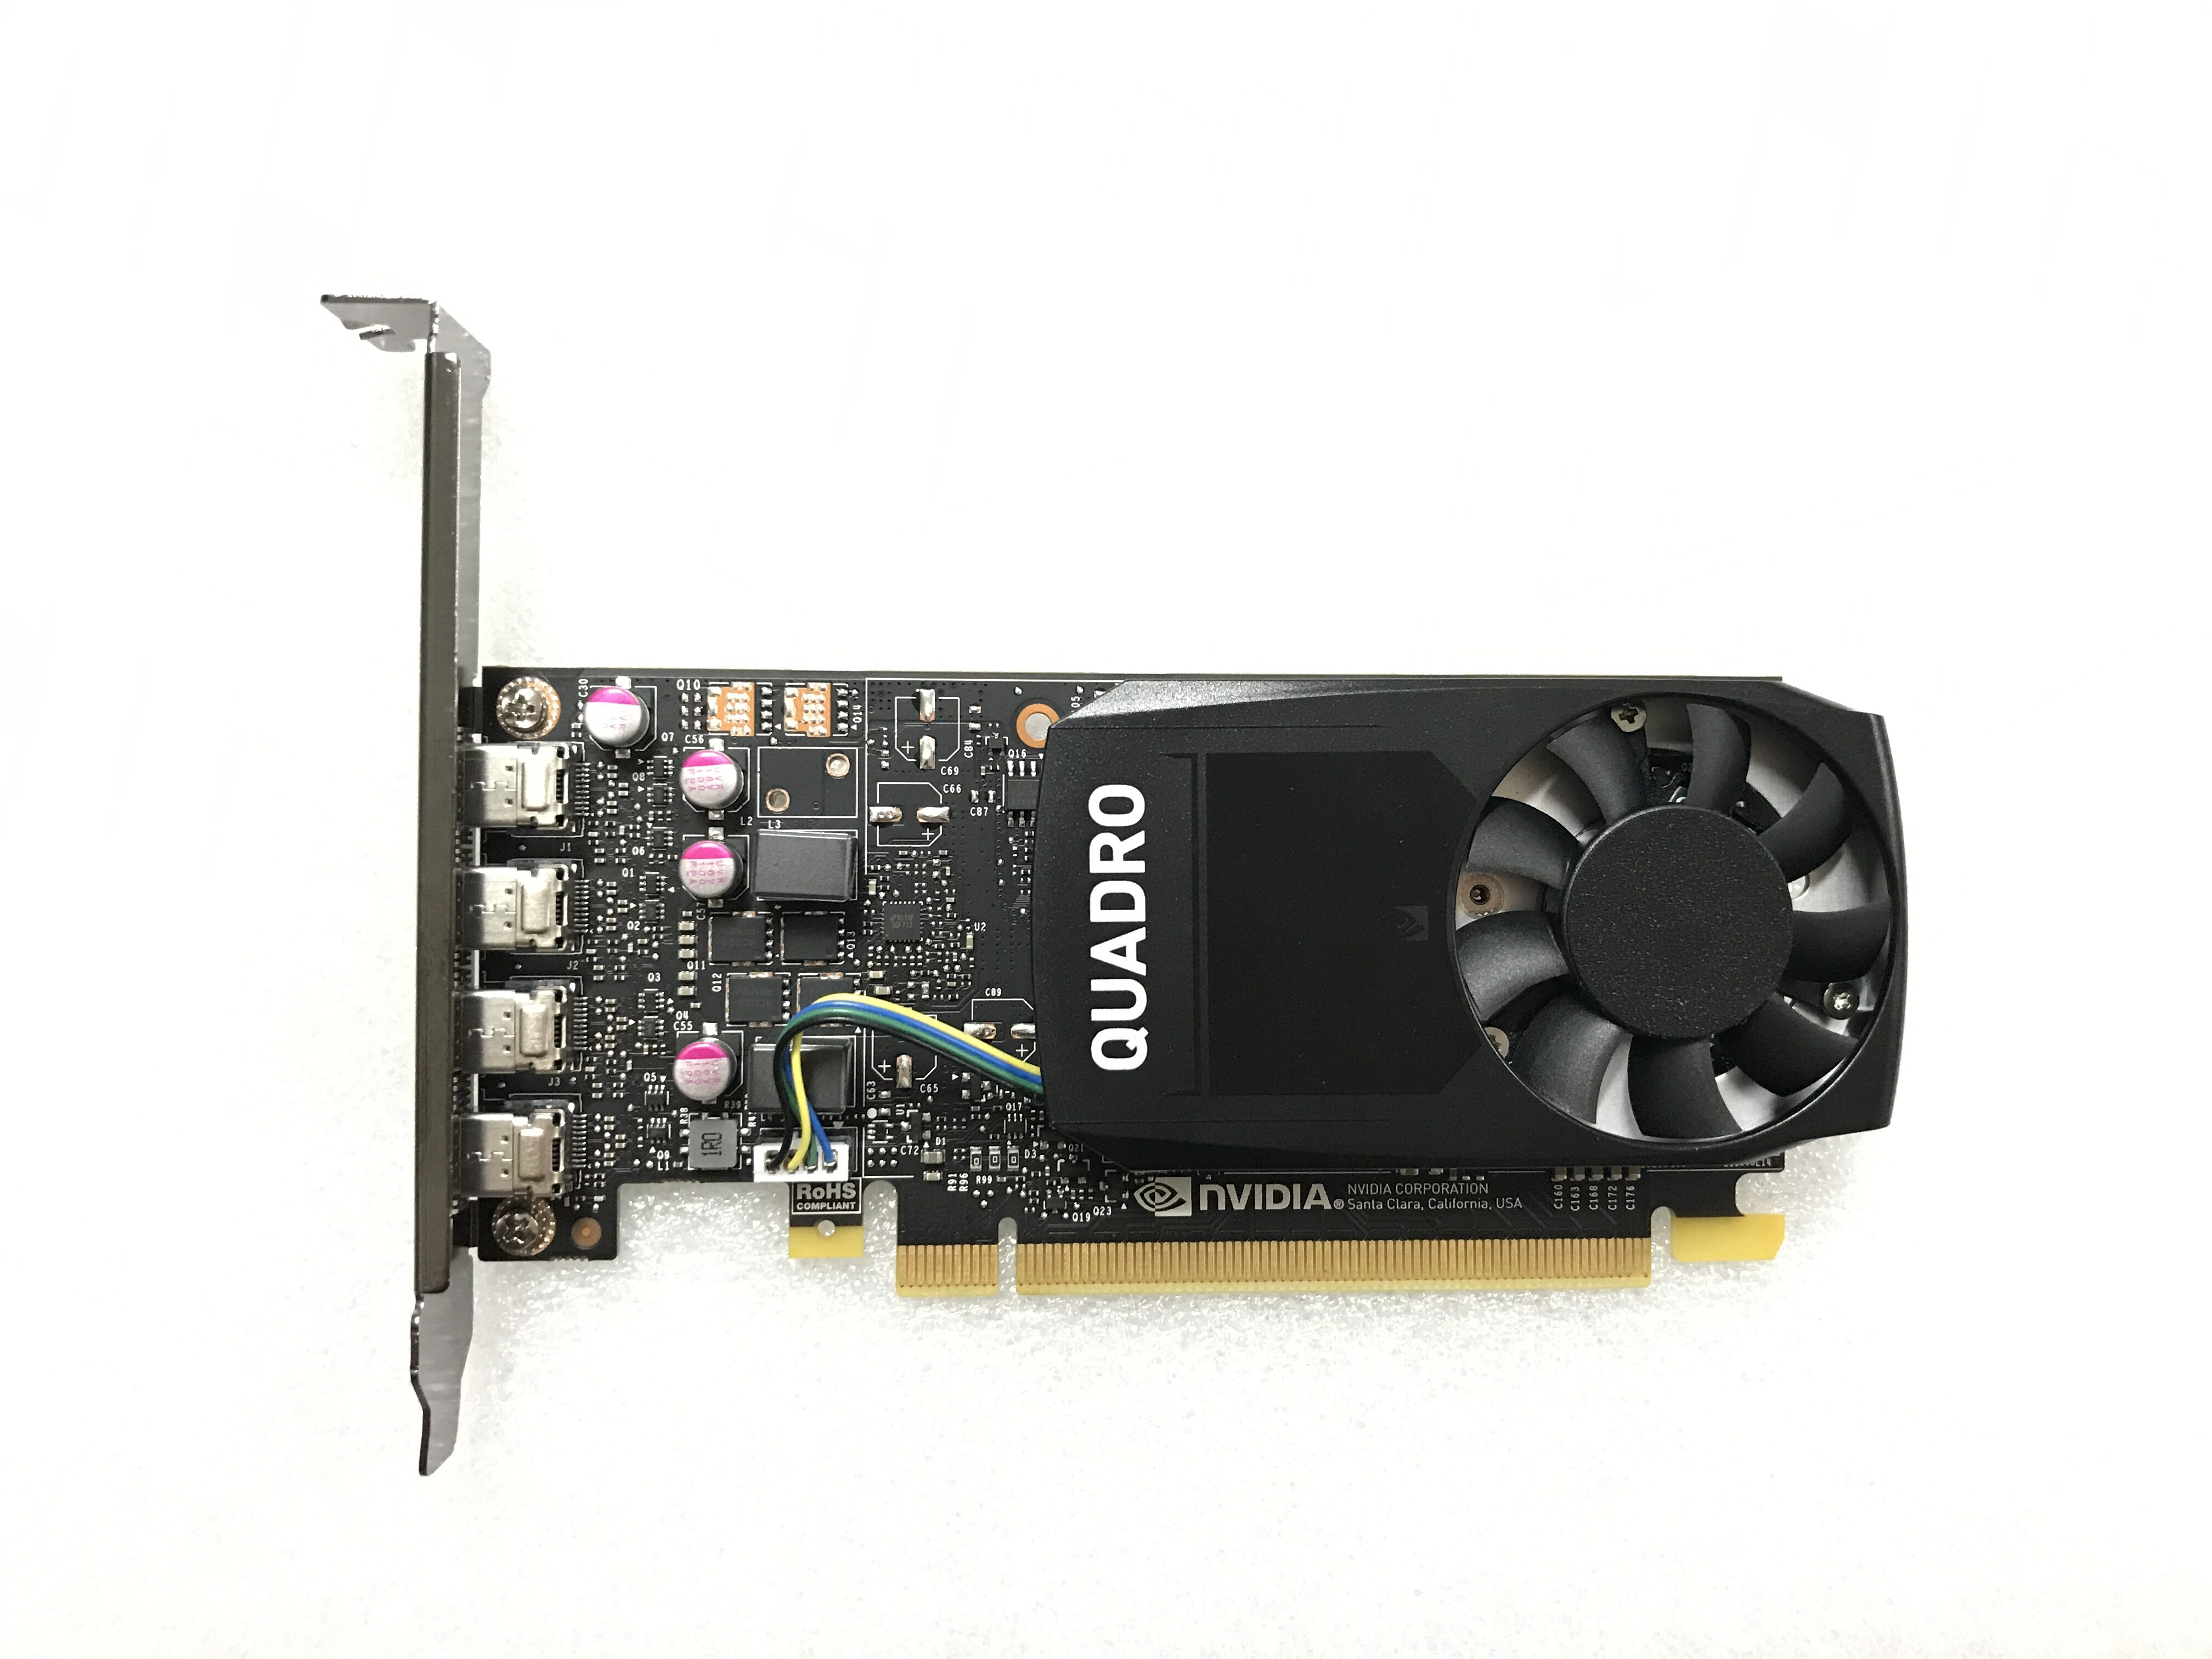 Quadro P1000 4G Professional Graphics Card Warranty For Three Years